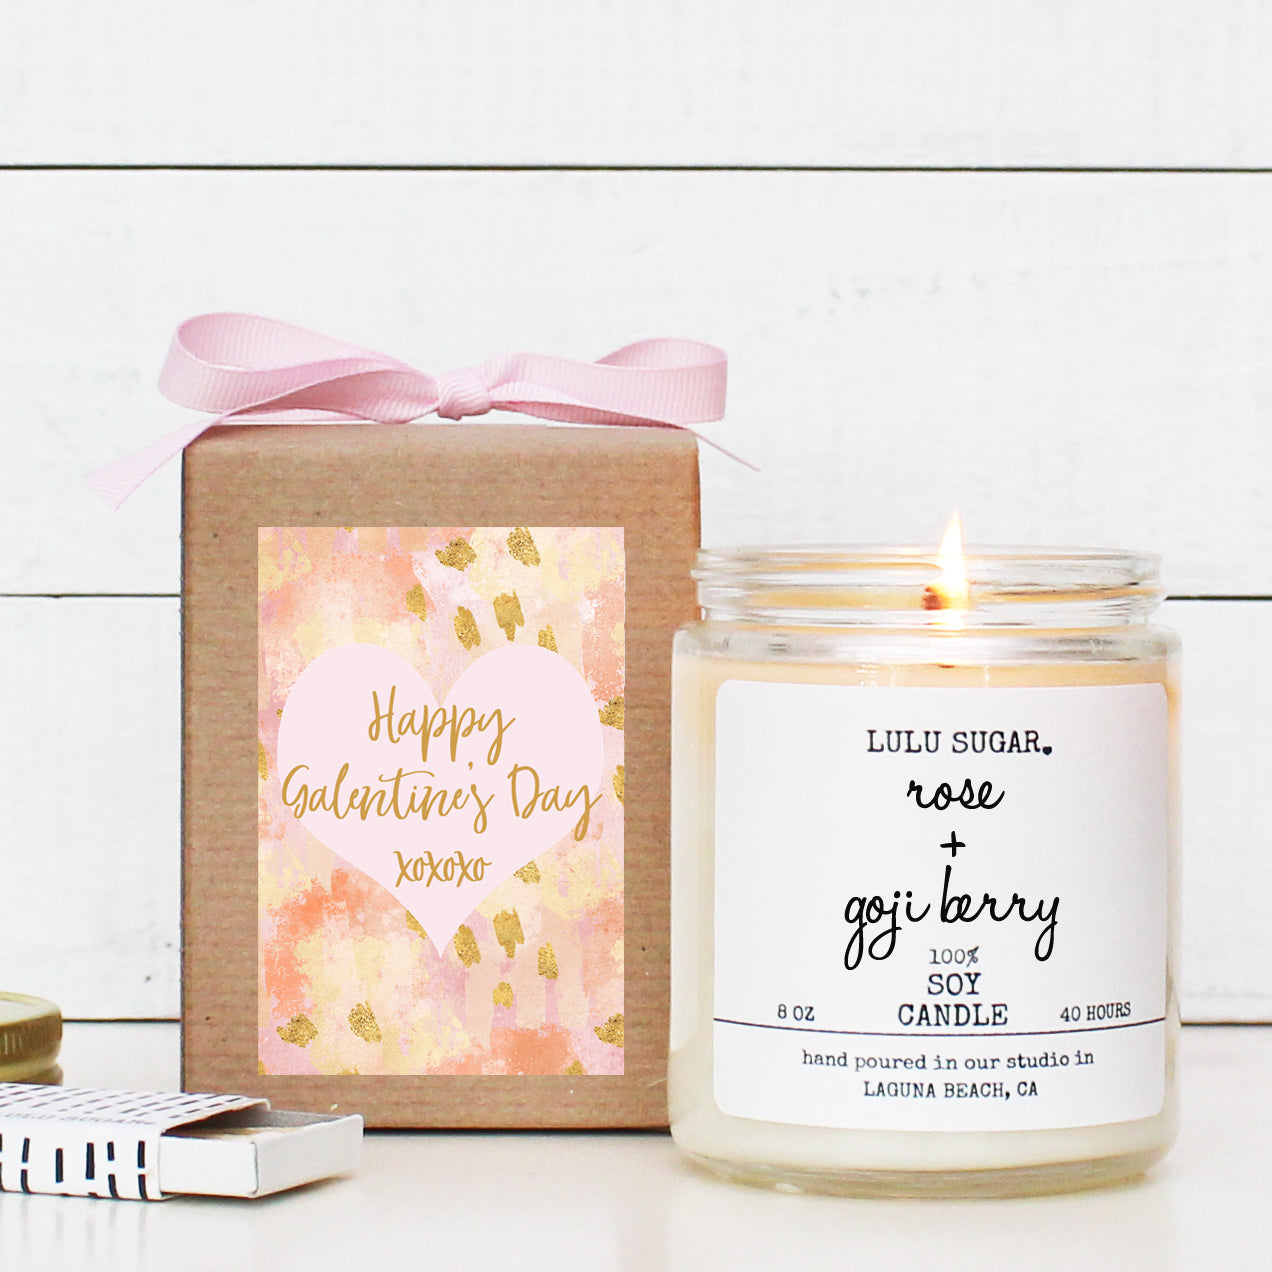 Happy Galentine's Day - 8 oz Soy Candle